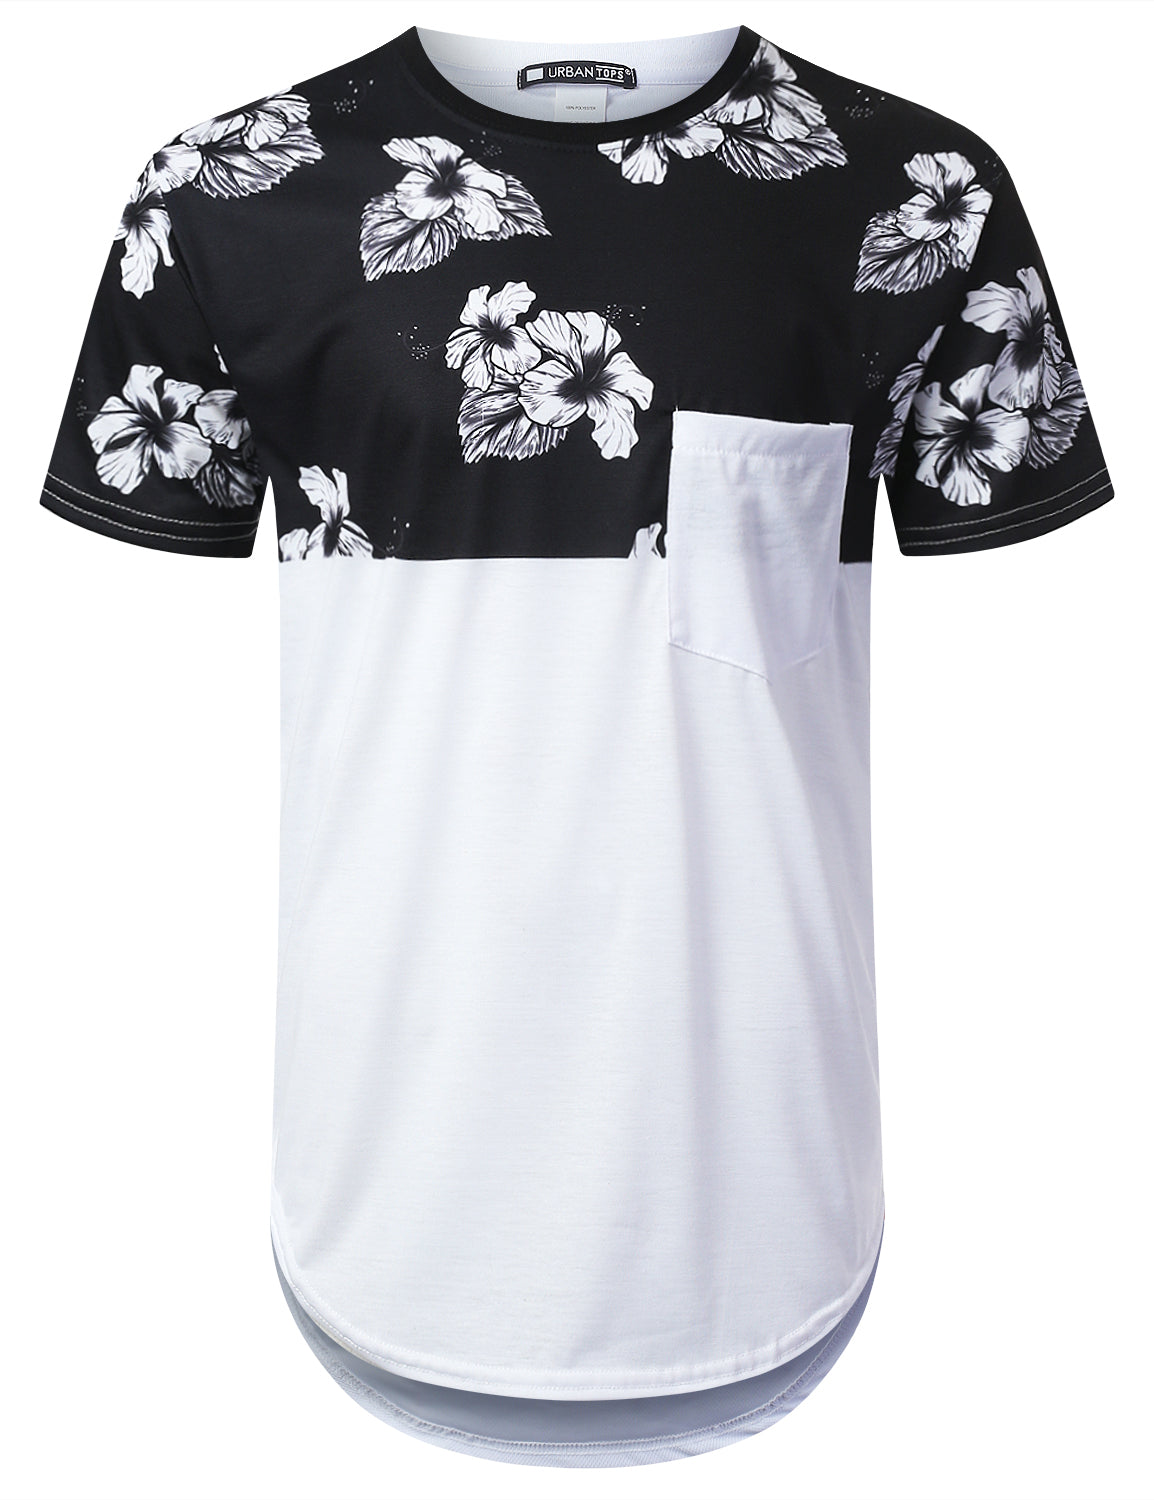 WHITE Rose Panel Pocket Longline T-shirt - URBANCREWS